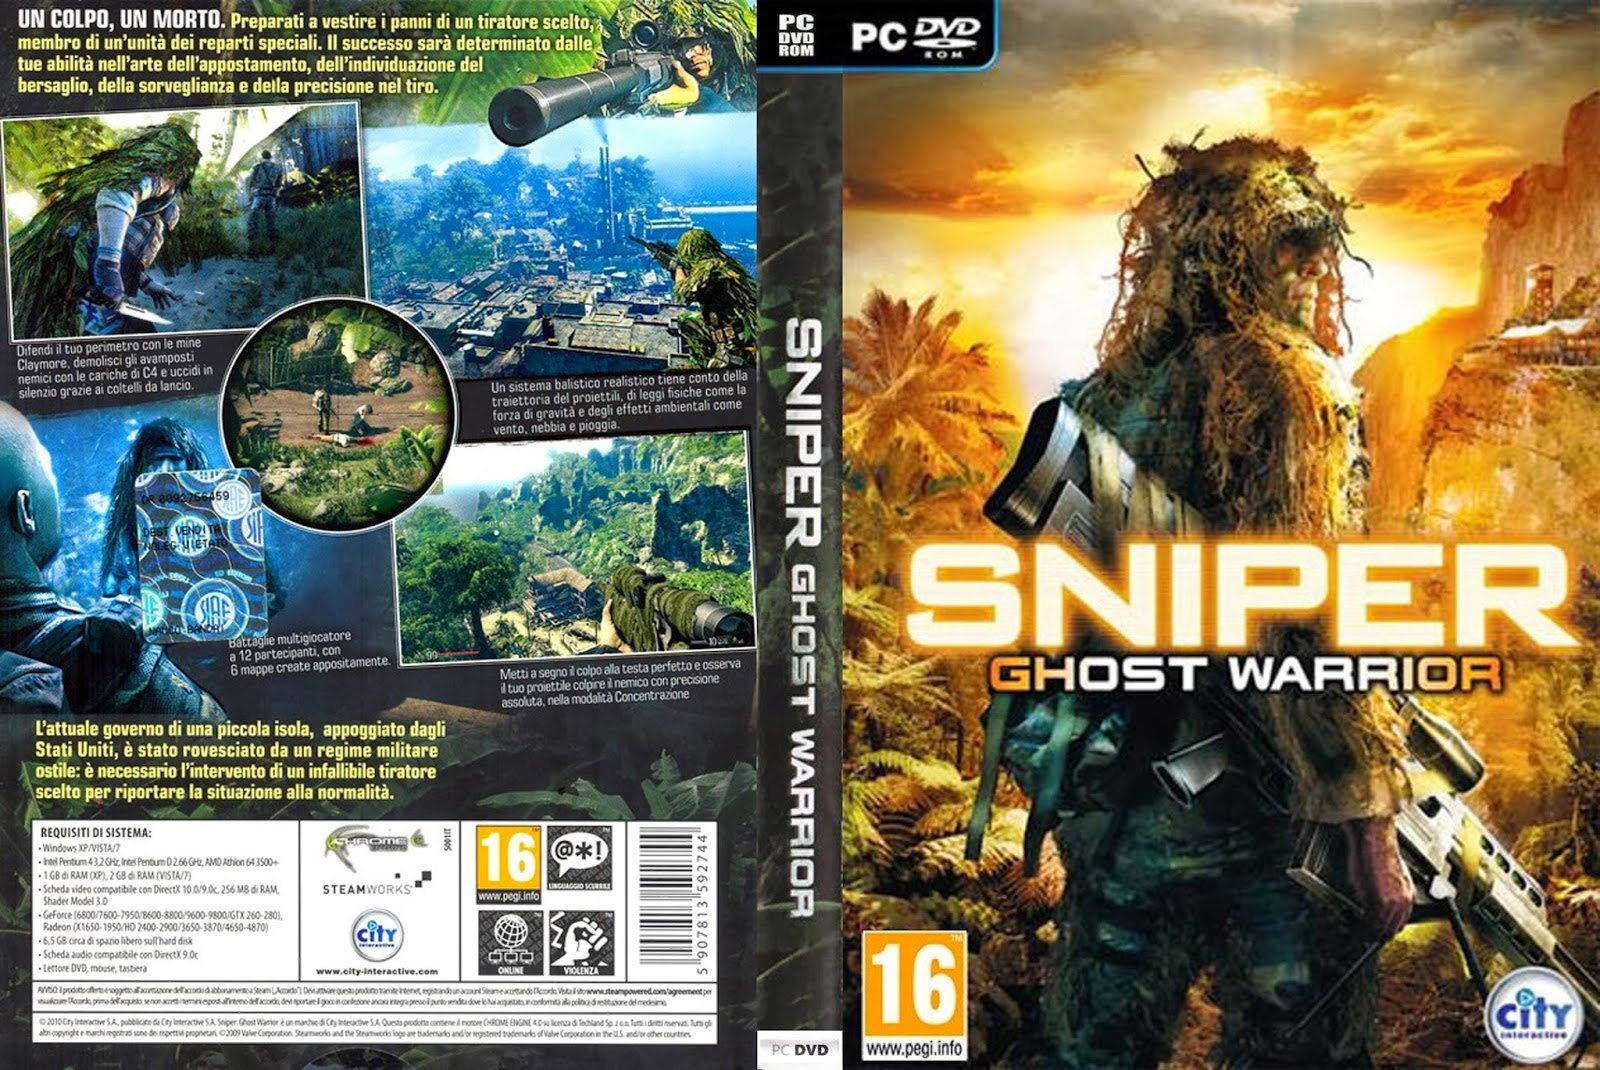 sniper ghost warrior system requirements